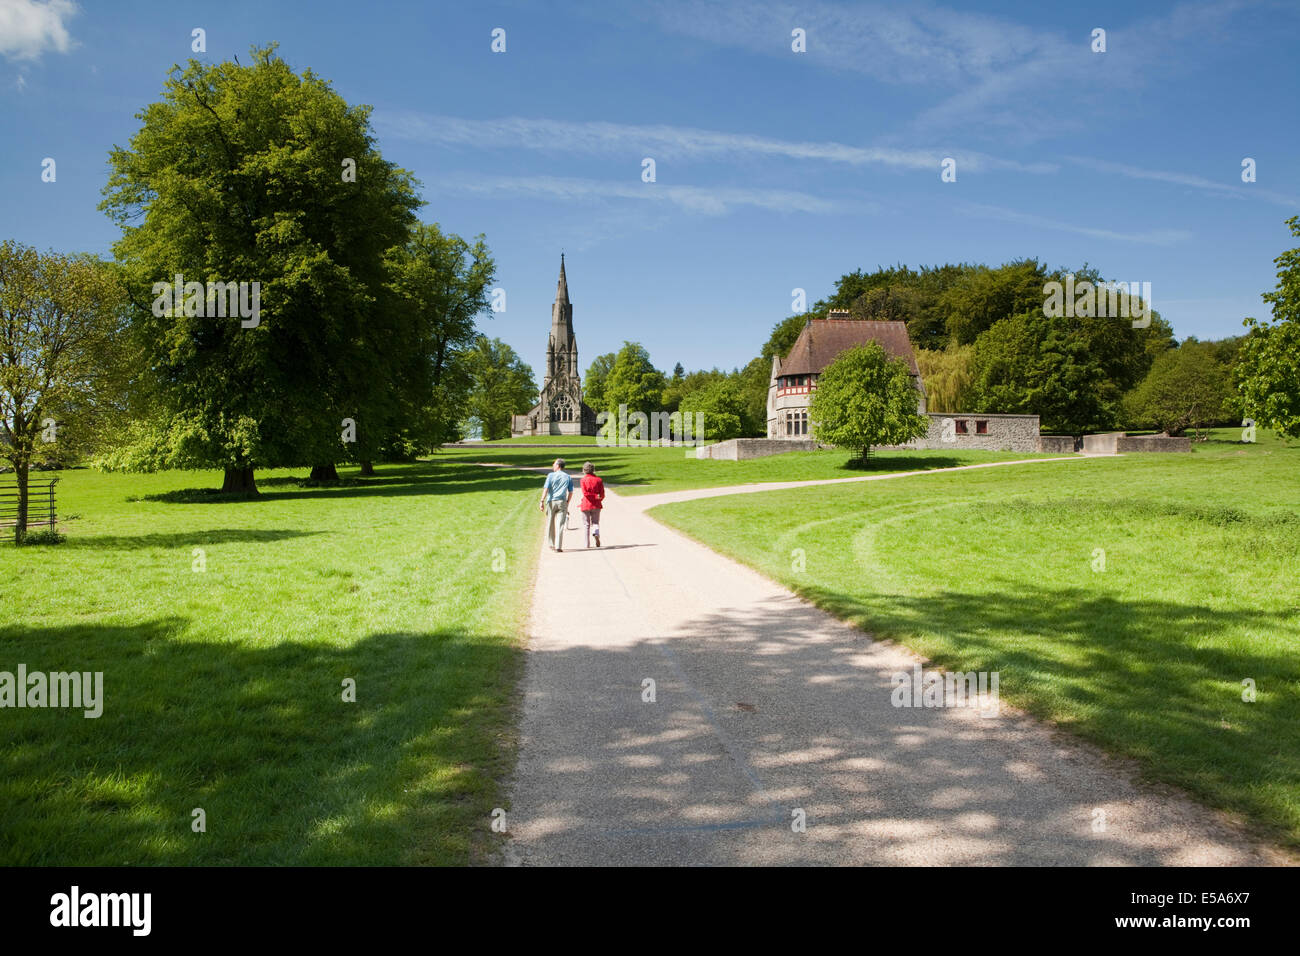 A man and a woman walk through Studley Royal Park in North Yorkshire - Stock Image